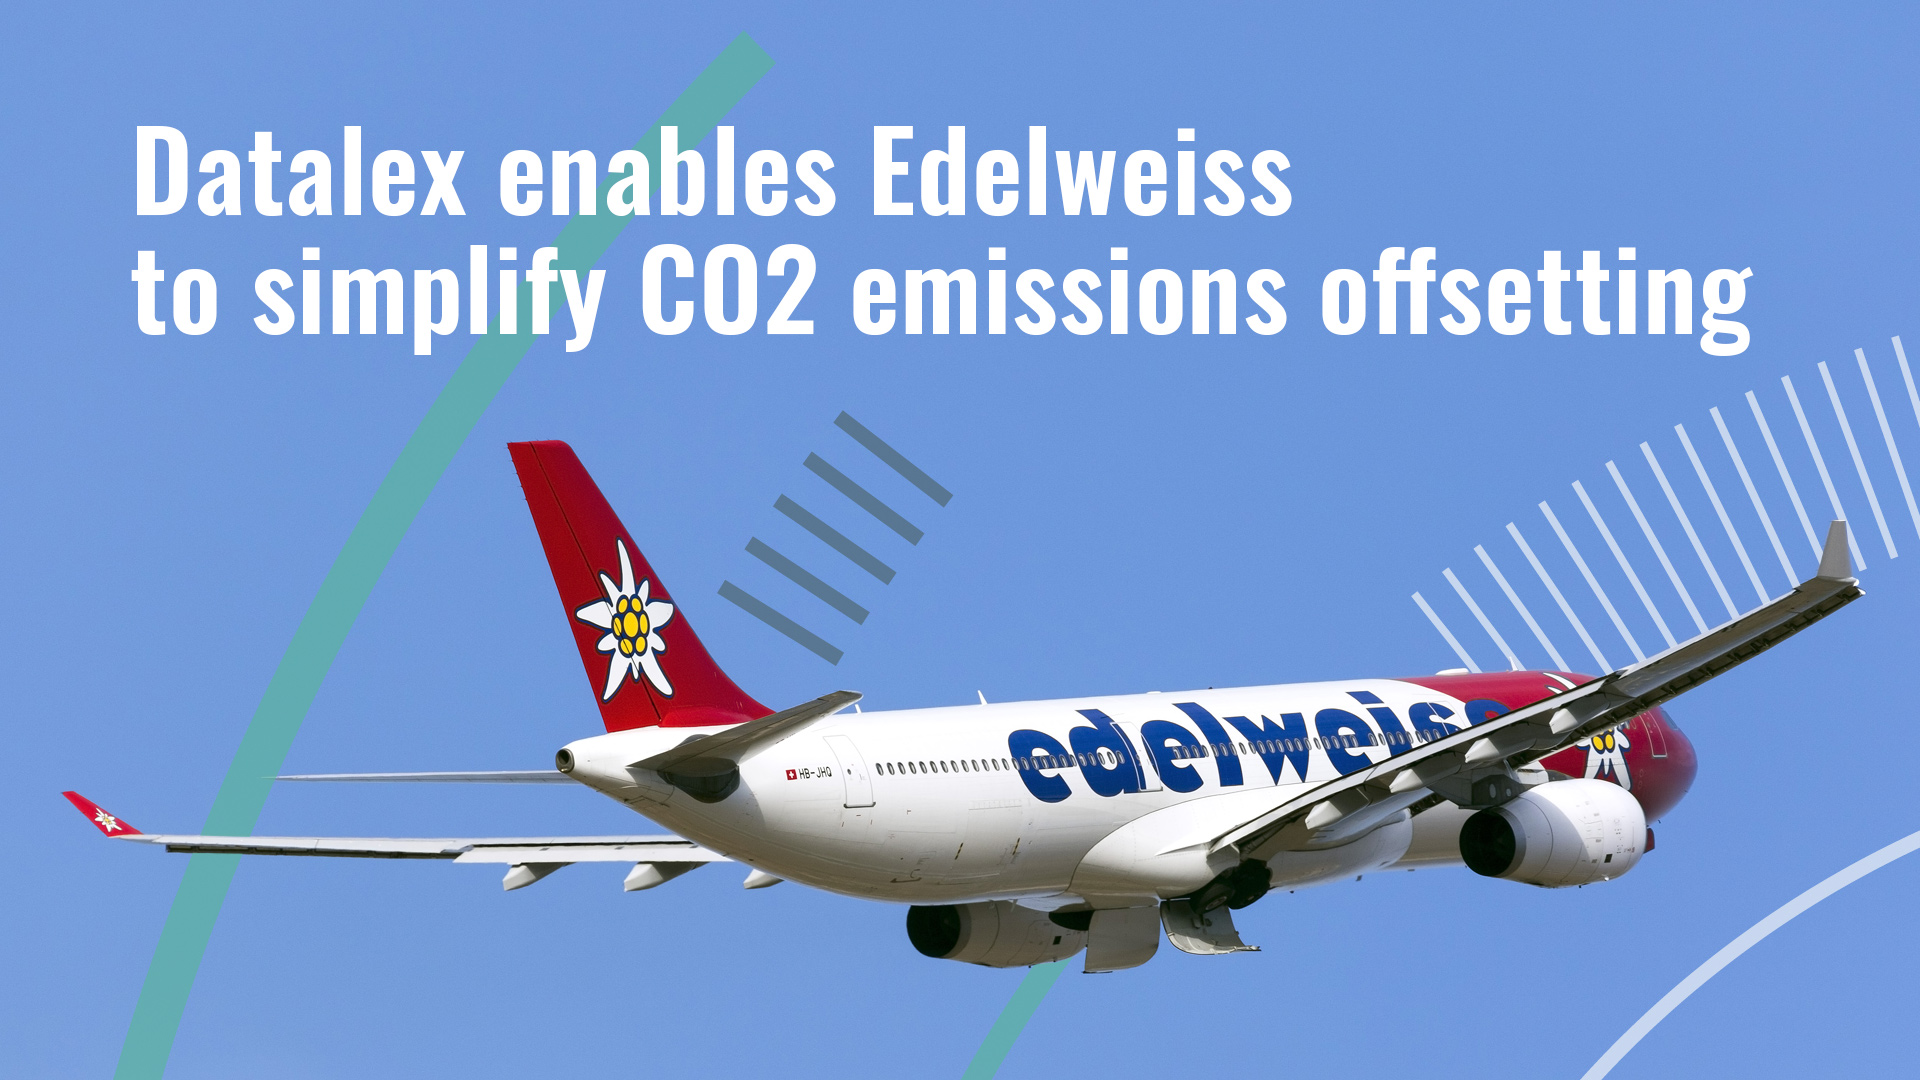 Datalex Enables Edelweiss to Simplify CO2 Emissions Offsetting